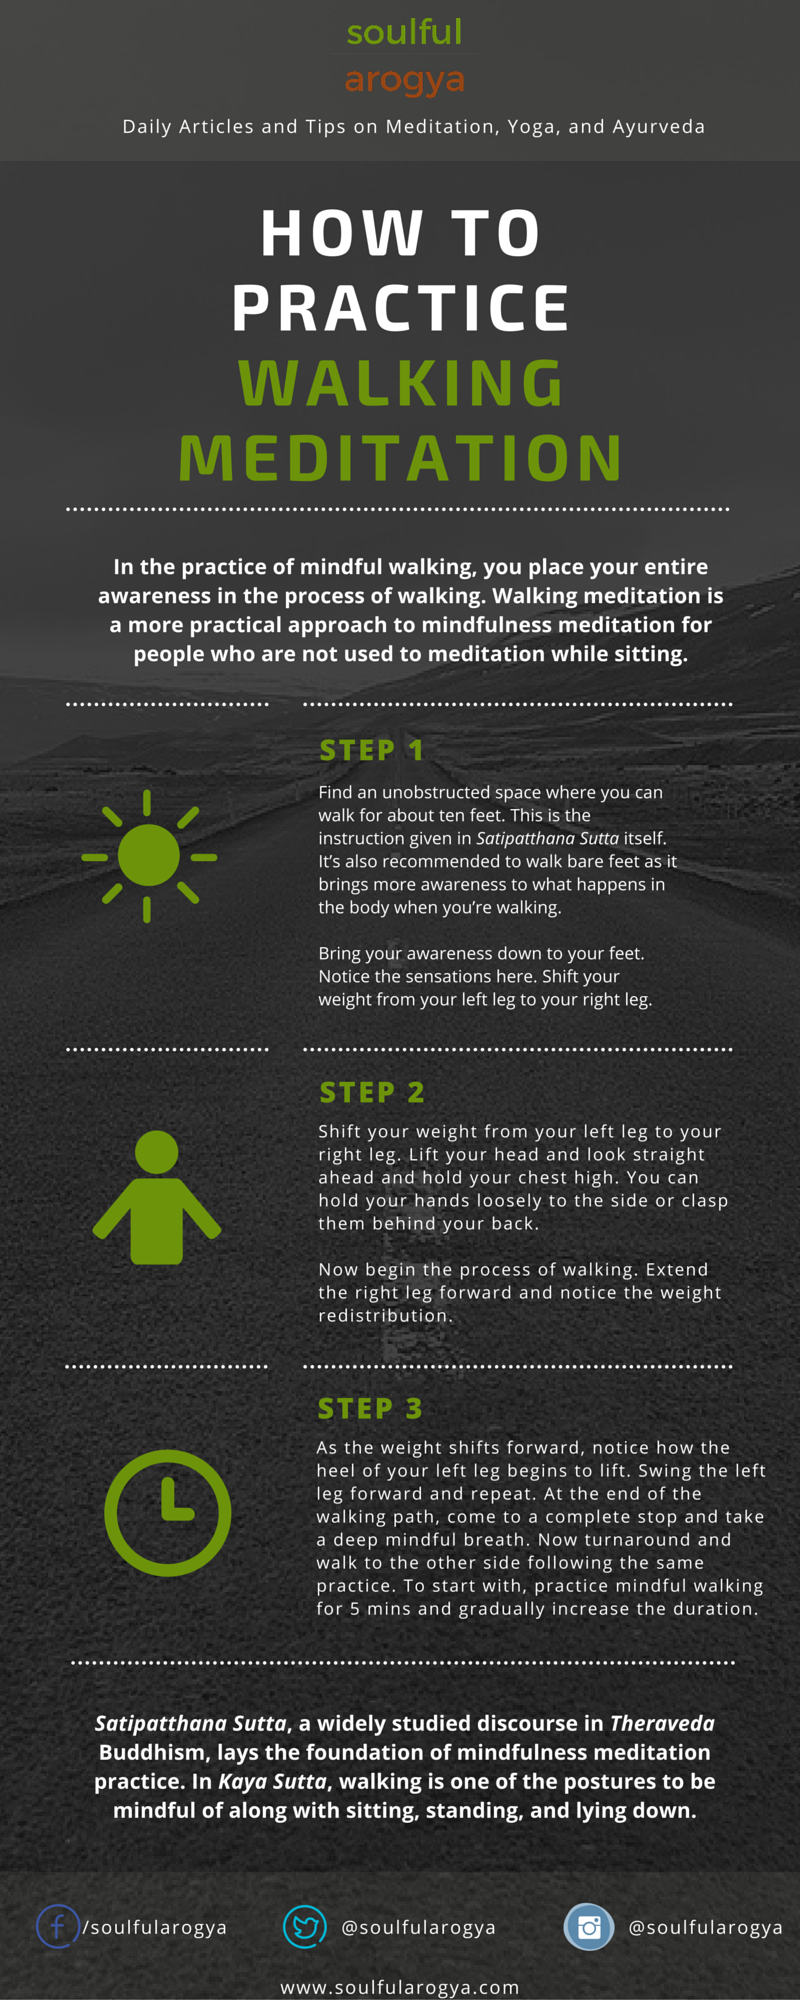 How-to-Practice-Walking-Meditation-Infographic-lkrllc